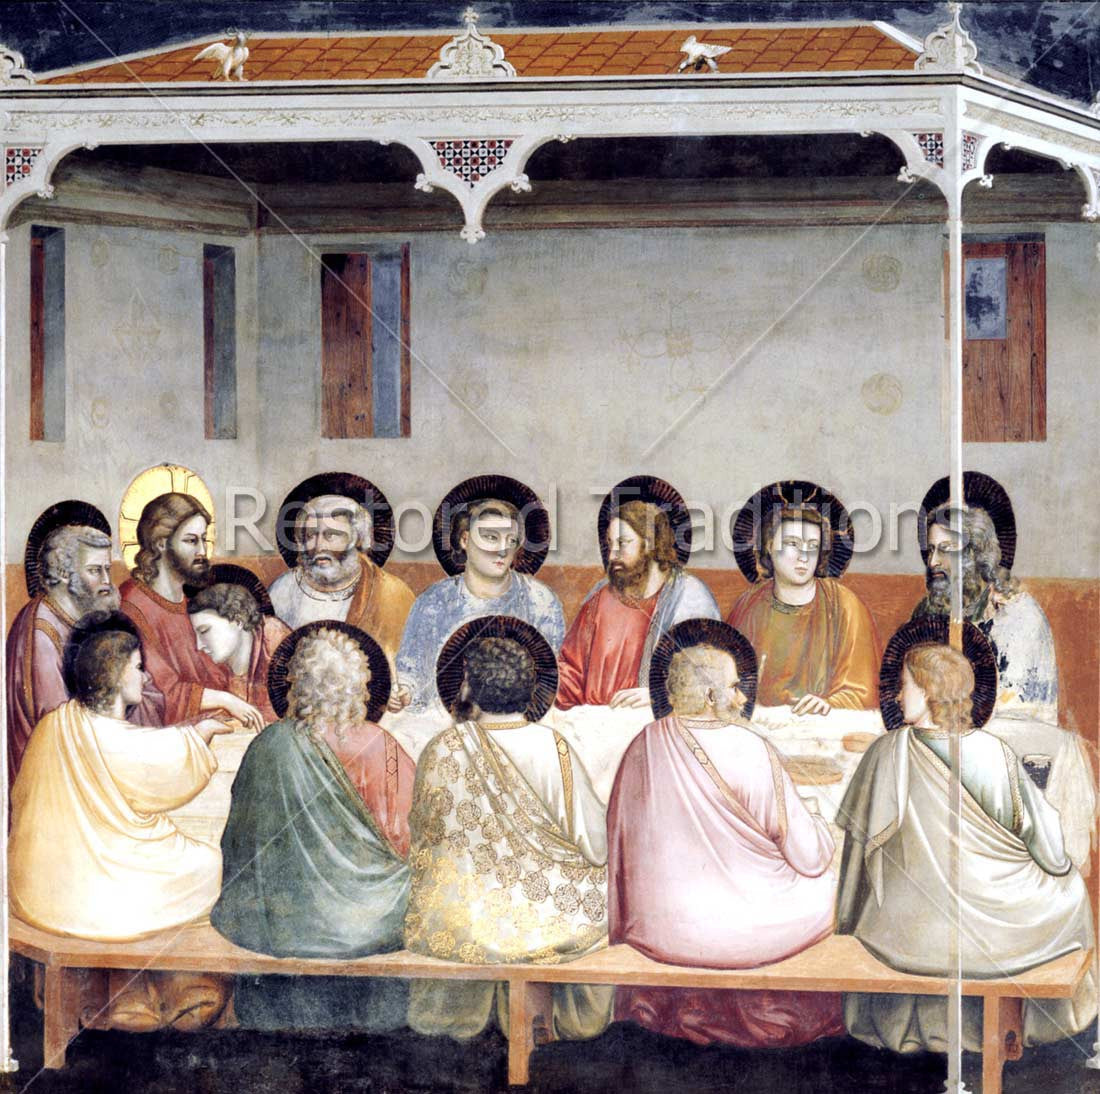 high res art last supper of jesus apostles by artist giotto bondone